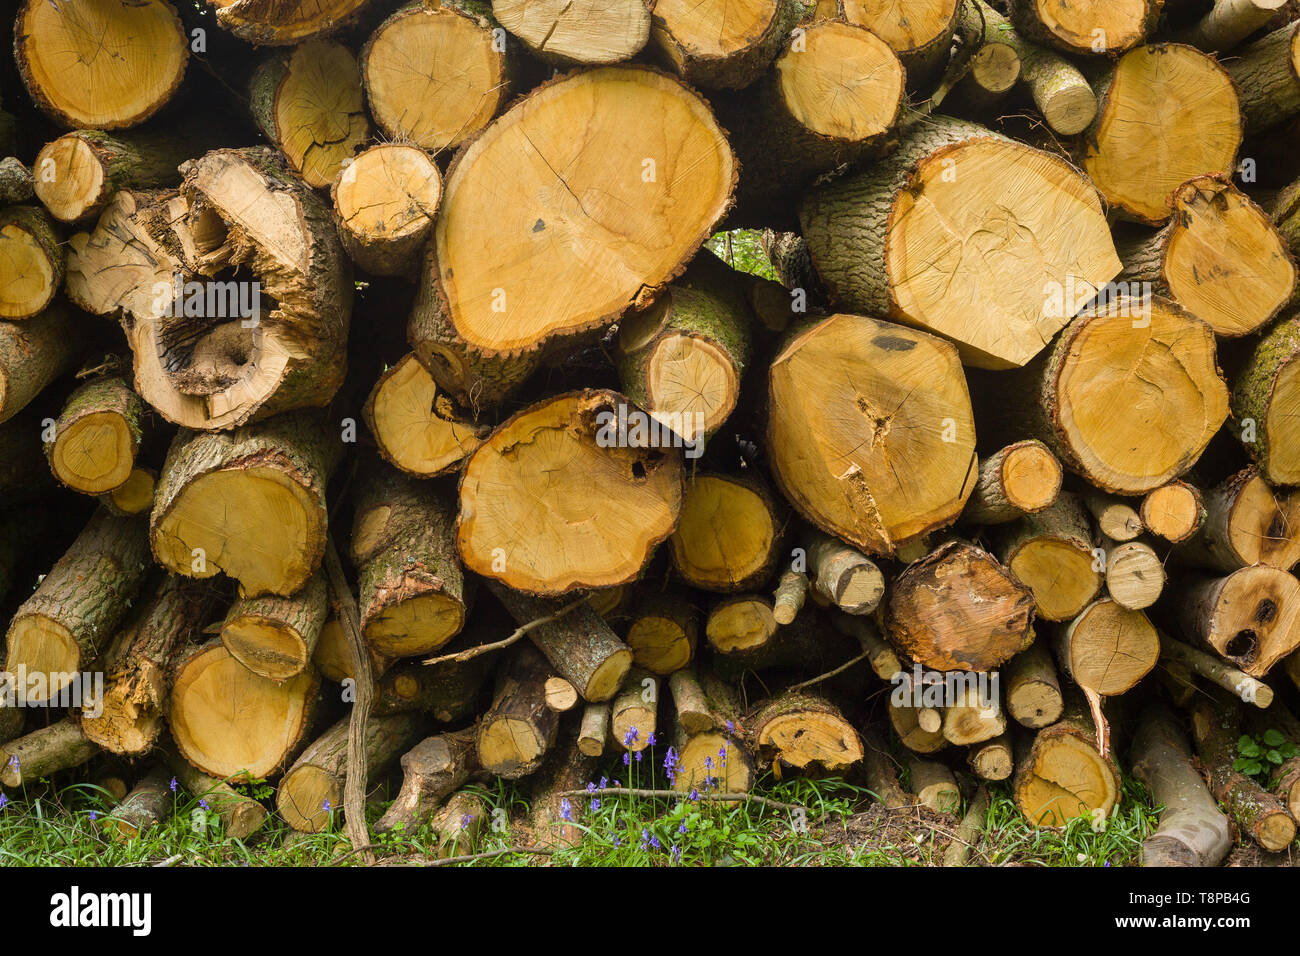 Sawn Beech wood logs with Bluebells in woods near Henley-on-Thames, Oxfordshire - Stock Image